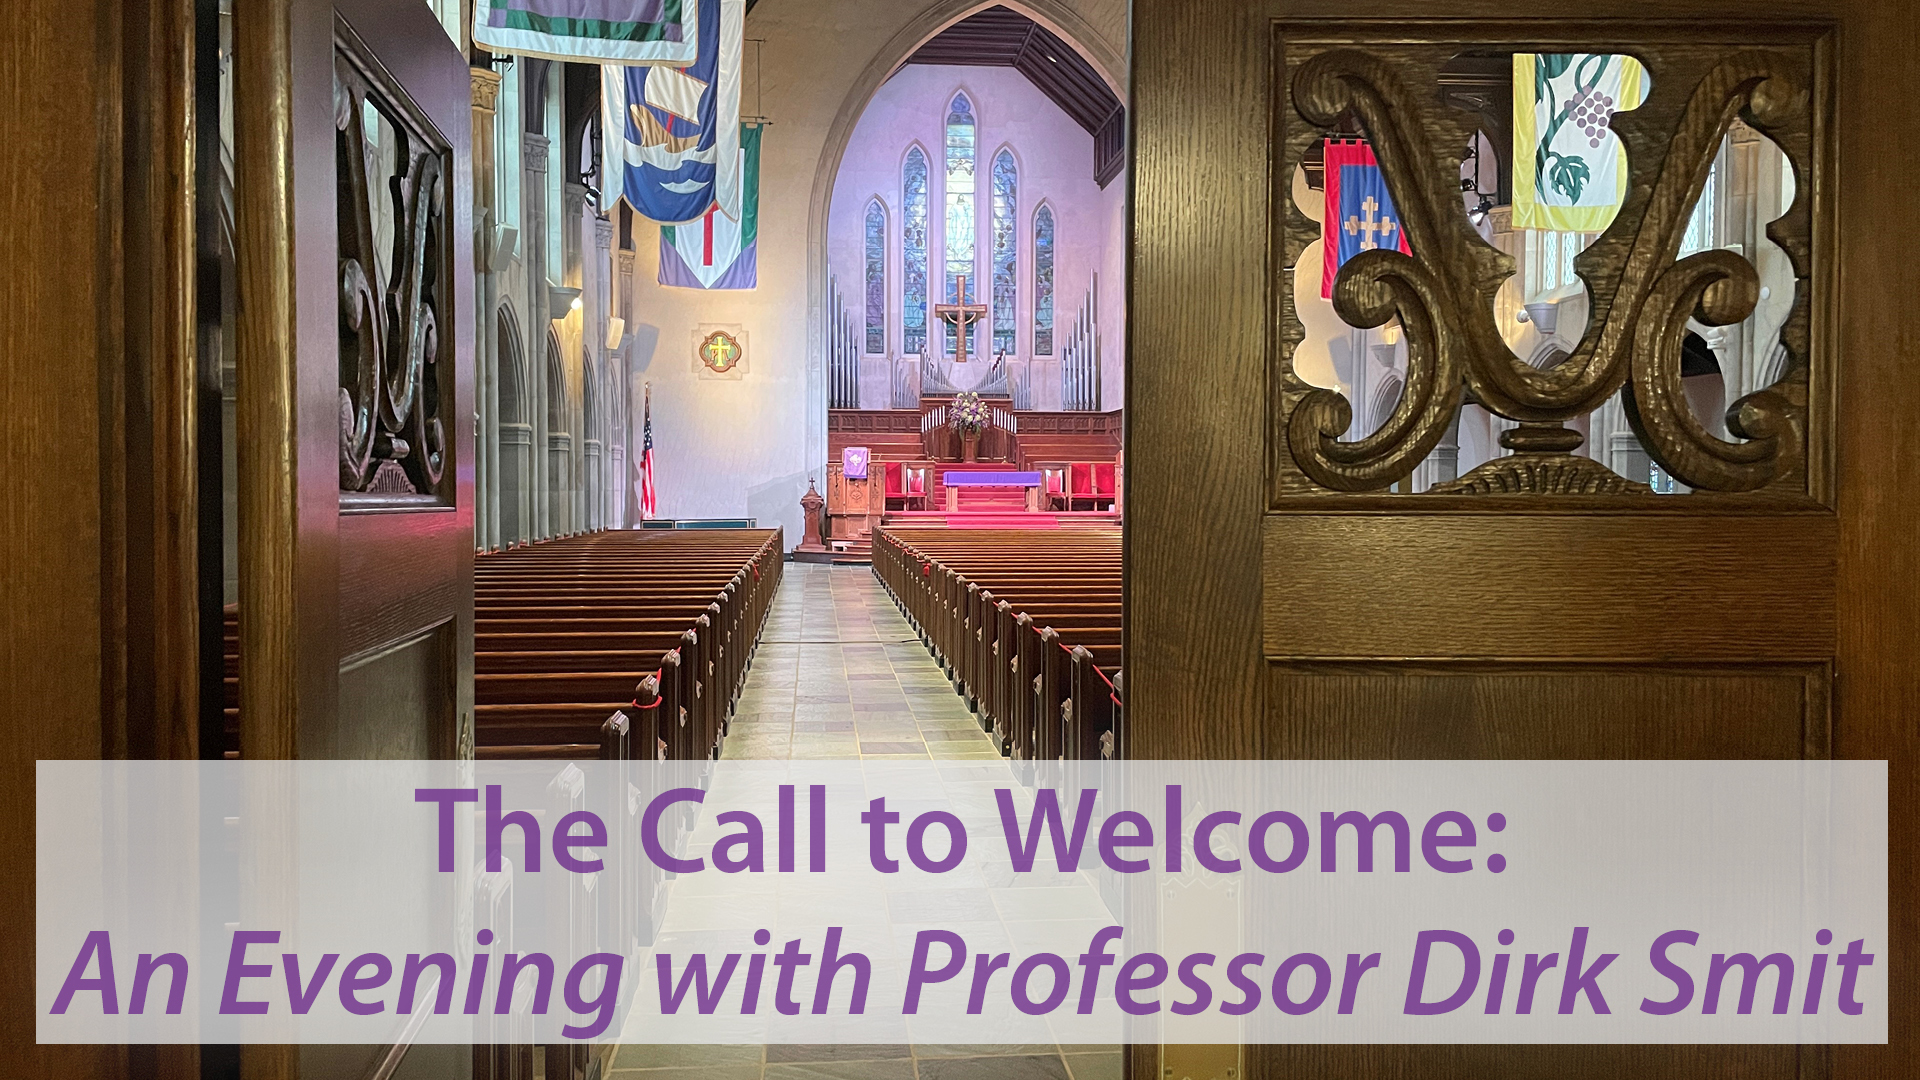 The Call to Welcome: An Evening with Professor Dirk Smit